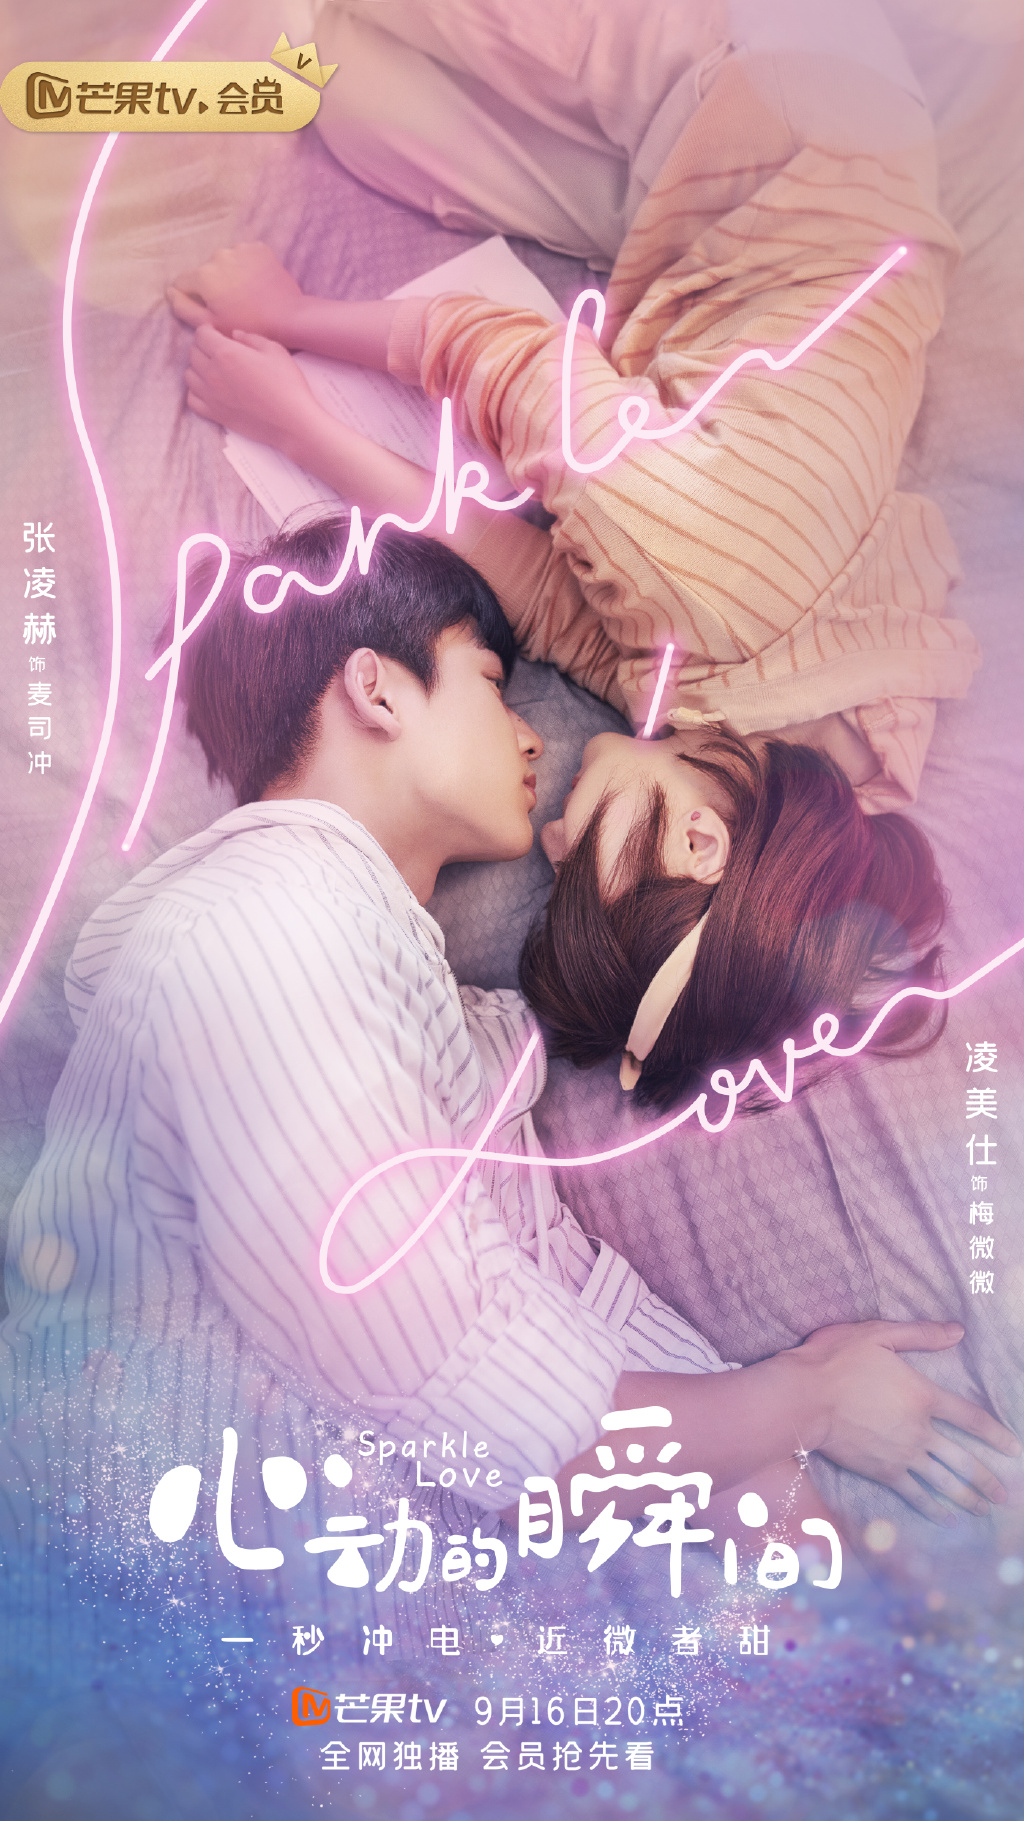 Sparkle Love Chinese Drama Poster